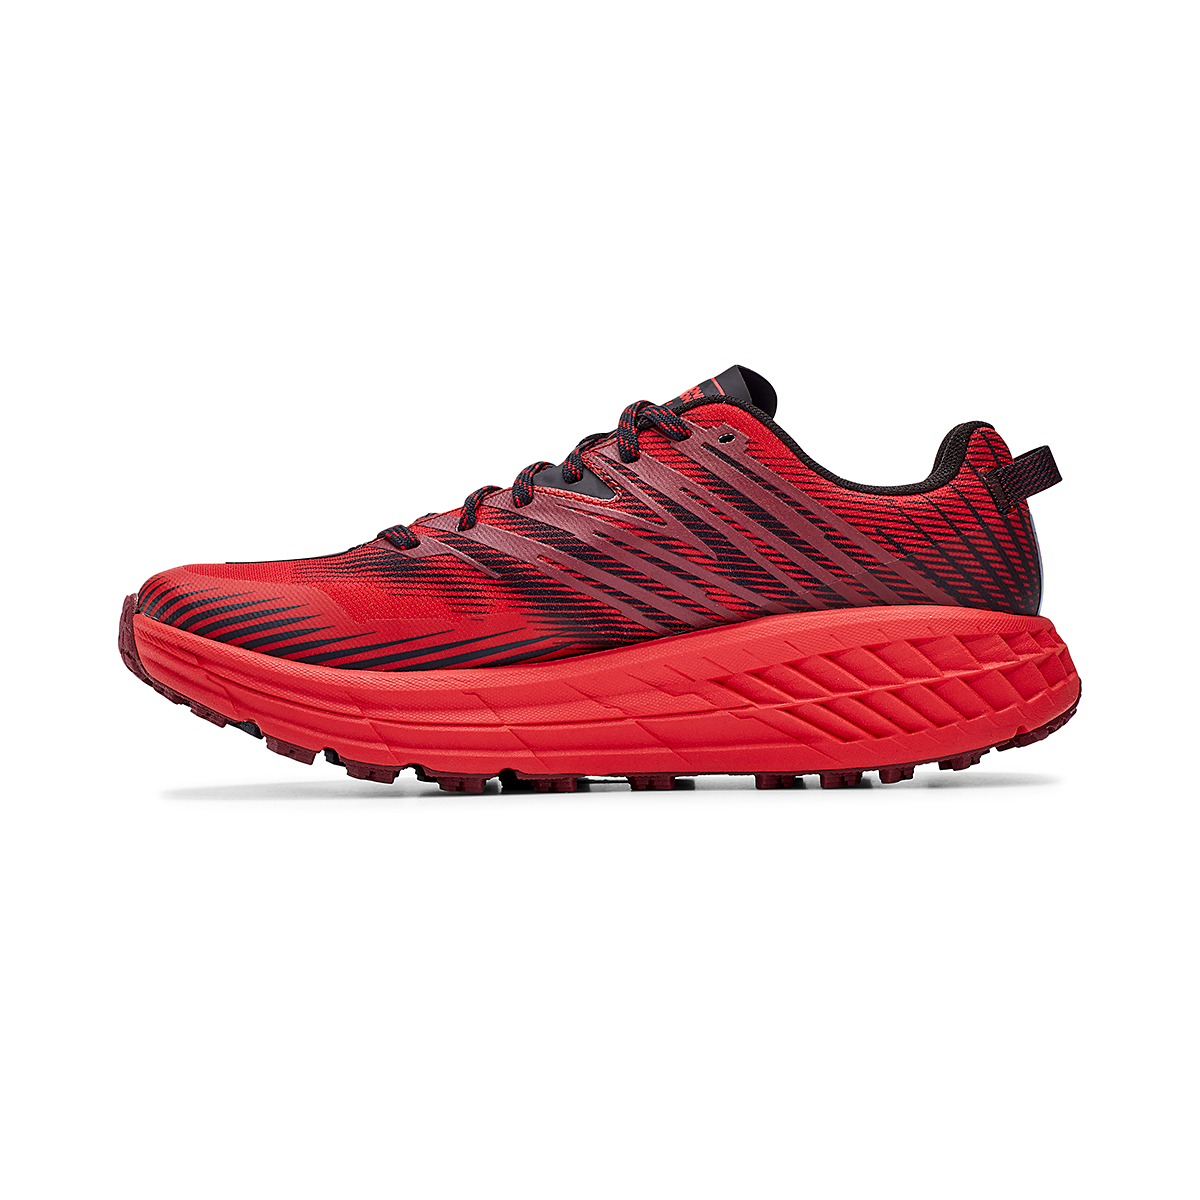 Men's Hoka One One Speedgoat 4 Trail Running Shoe - Color: Cordovan/High Risk Red - Size: 7 - Width: Regular, Cordovan/High Risk Red, large, image 2